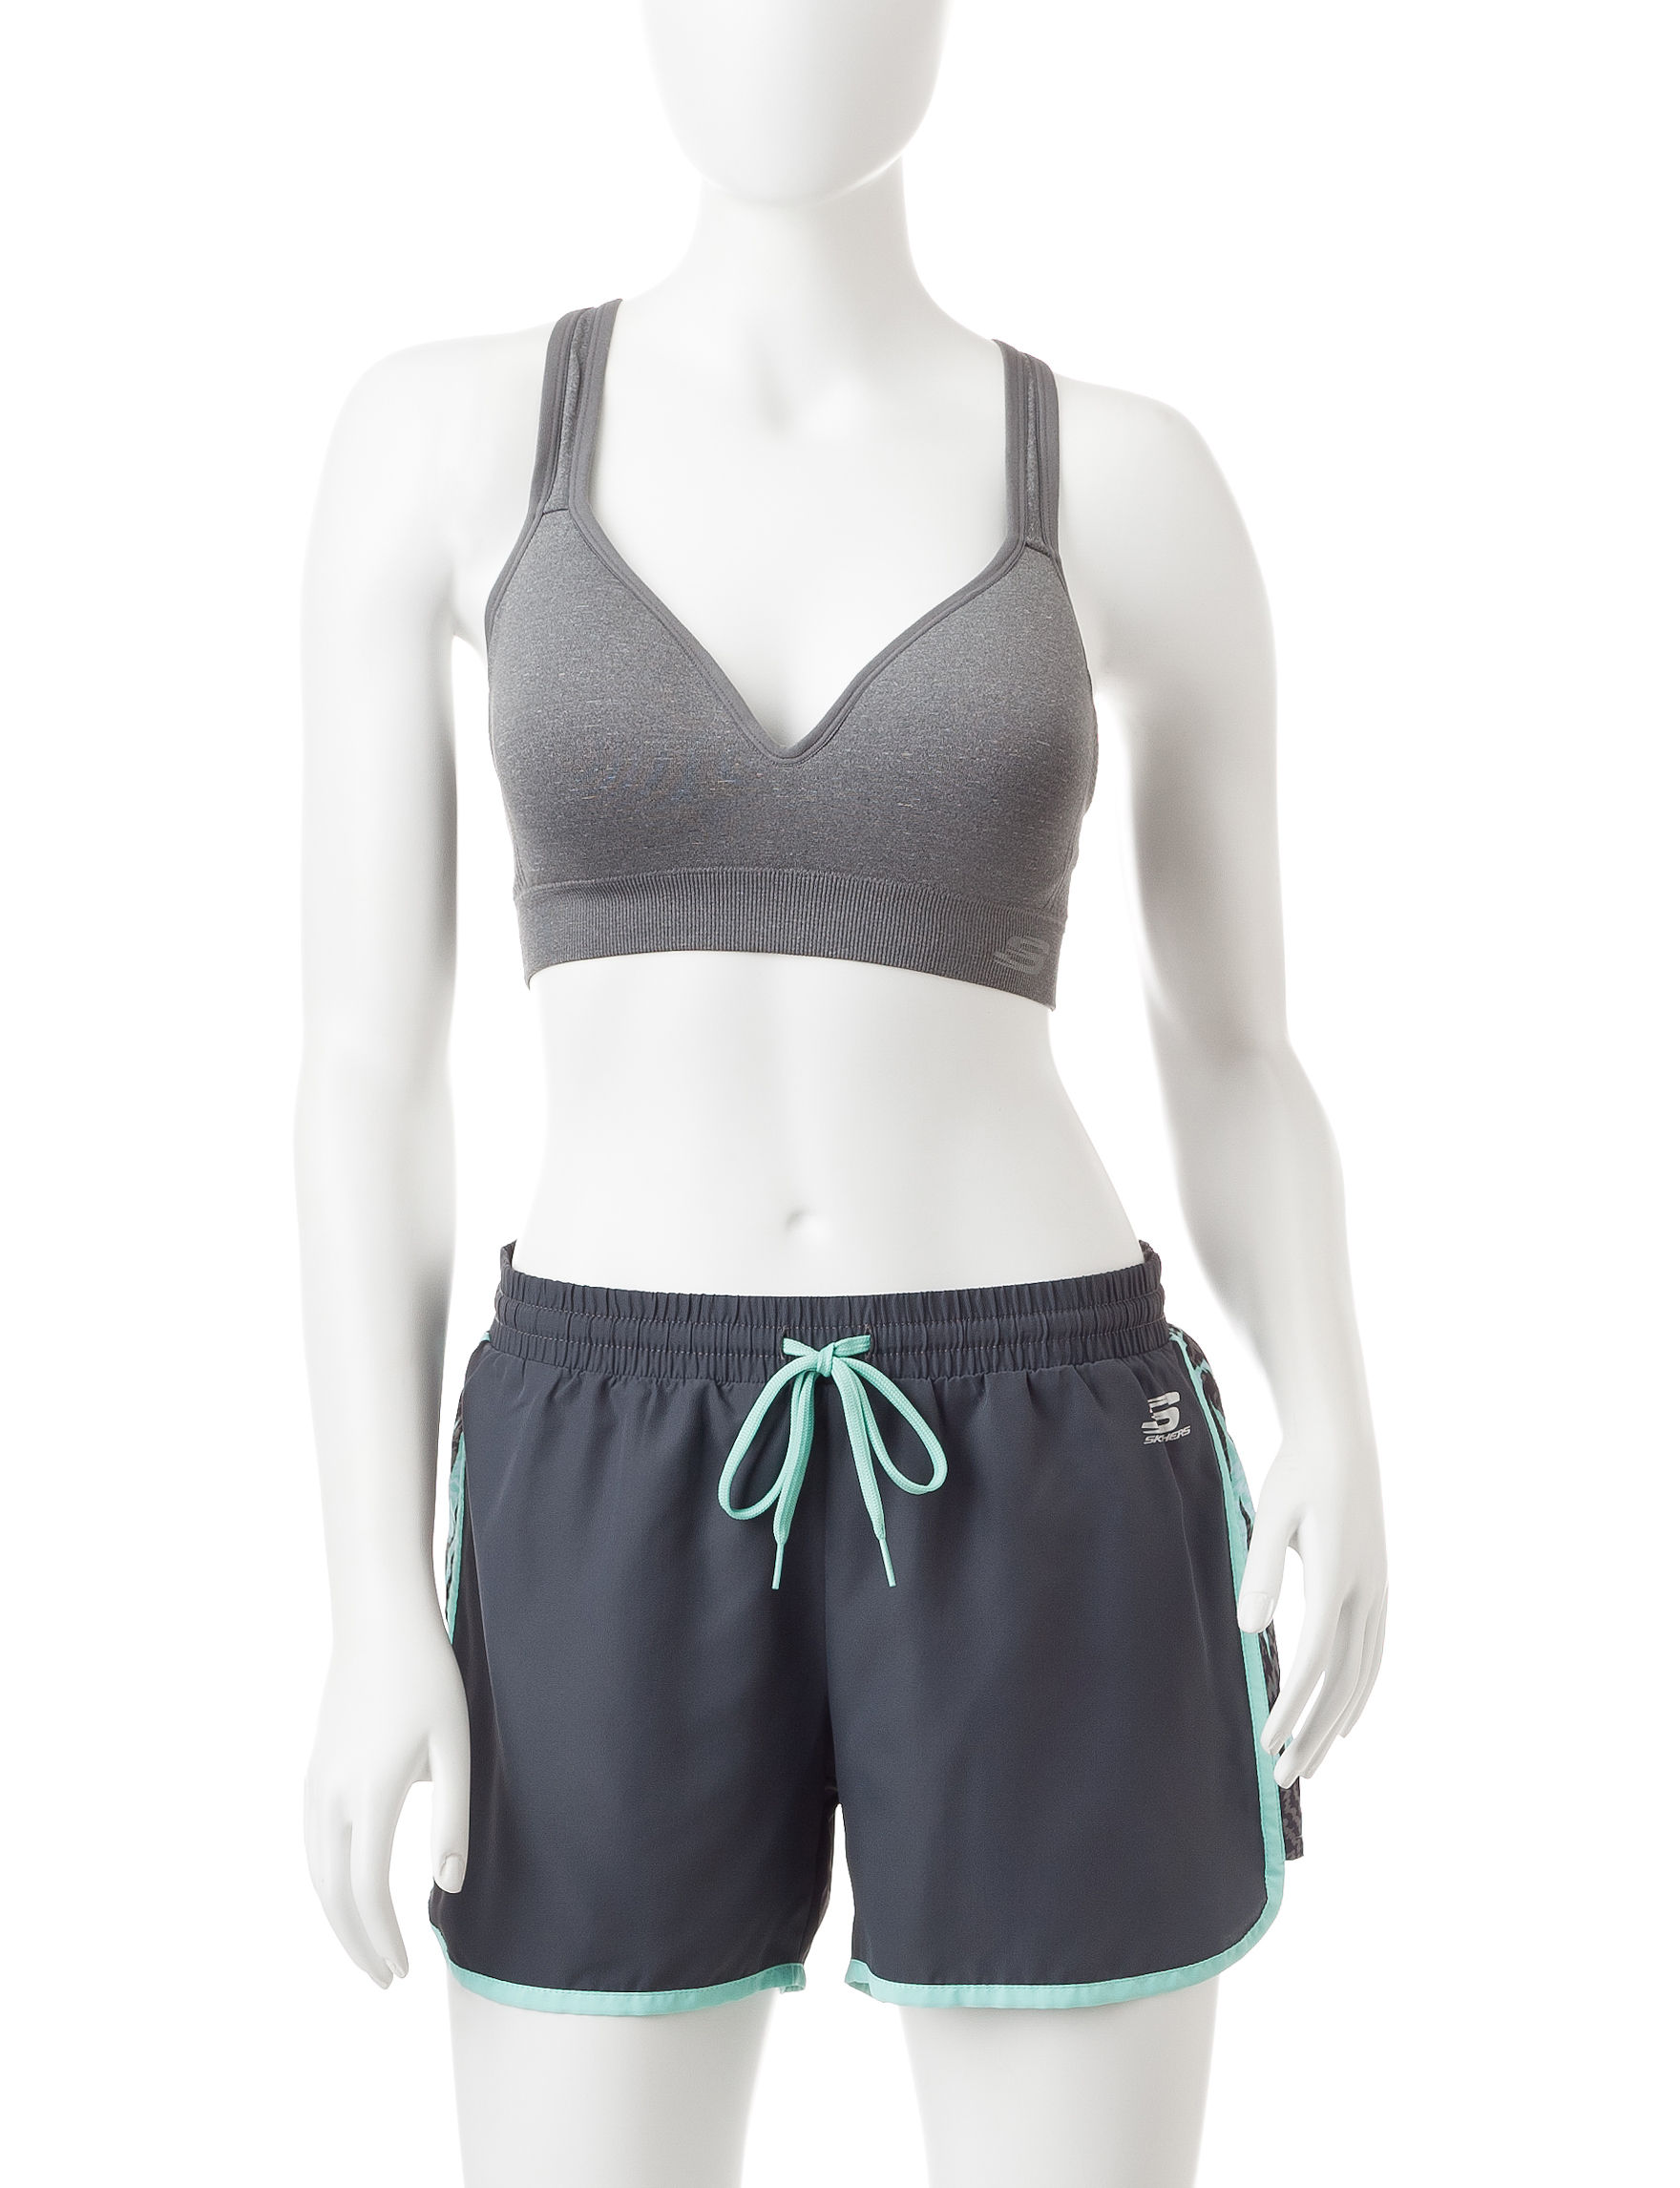 Skechers Grey Sports Bra